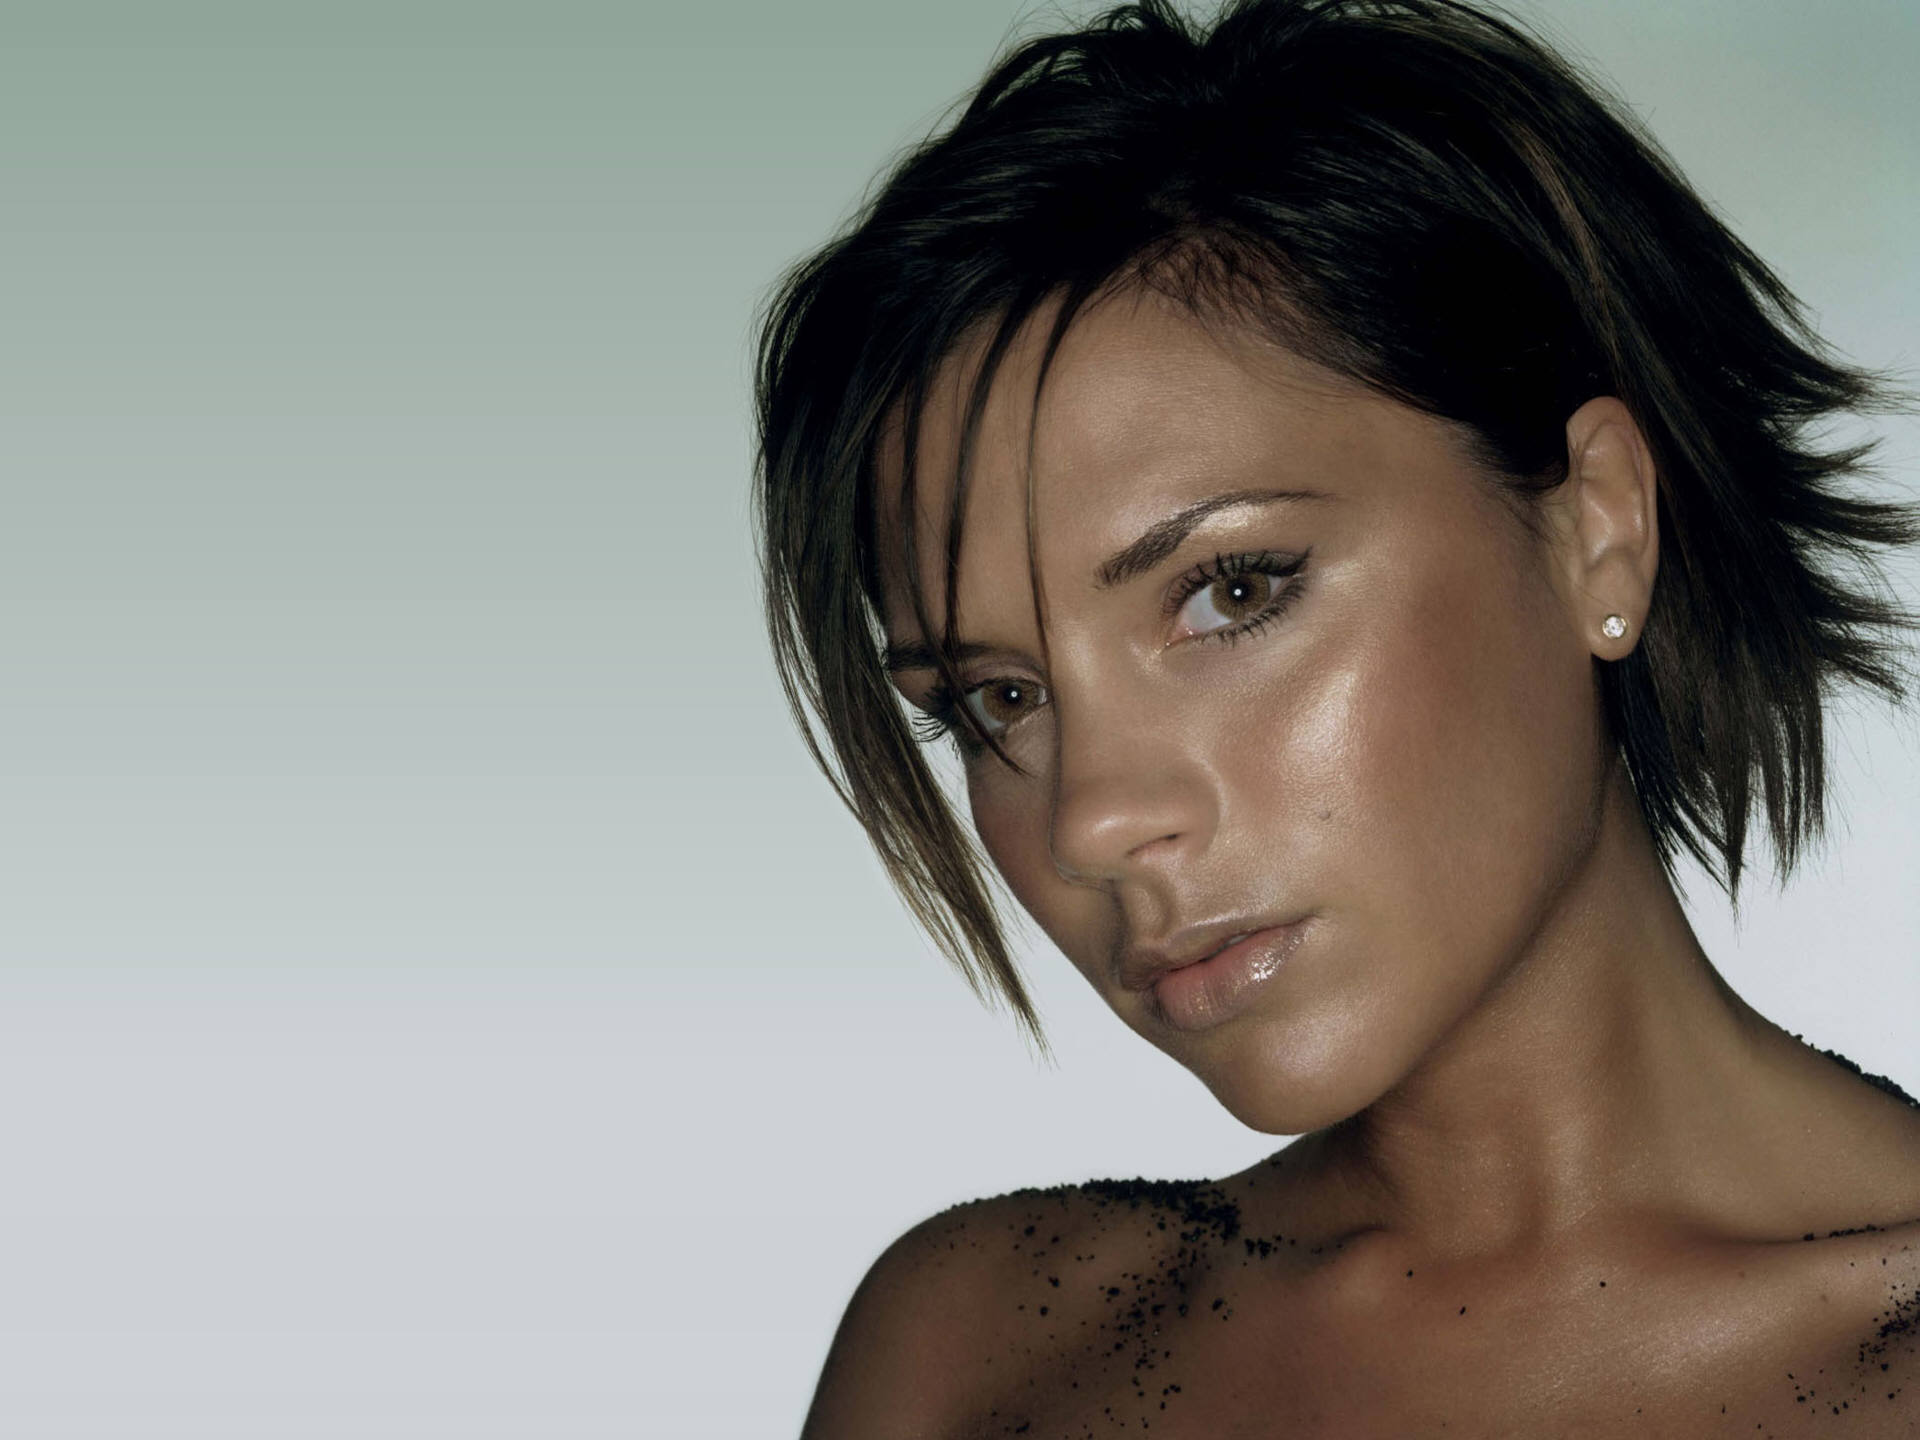 Victoria Beckham Full hd wallpapers